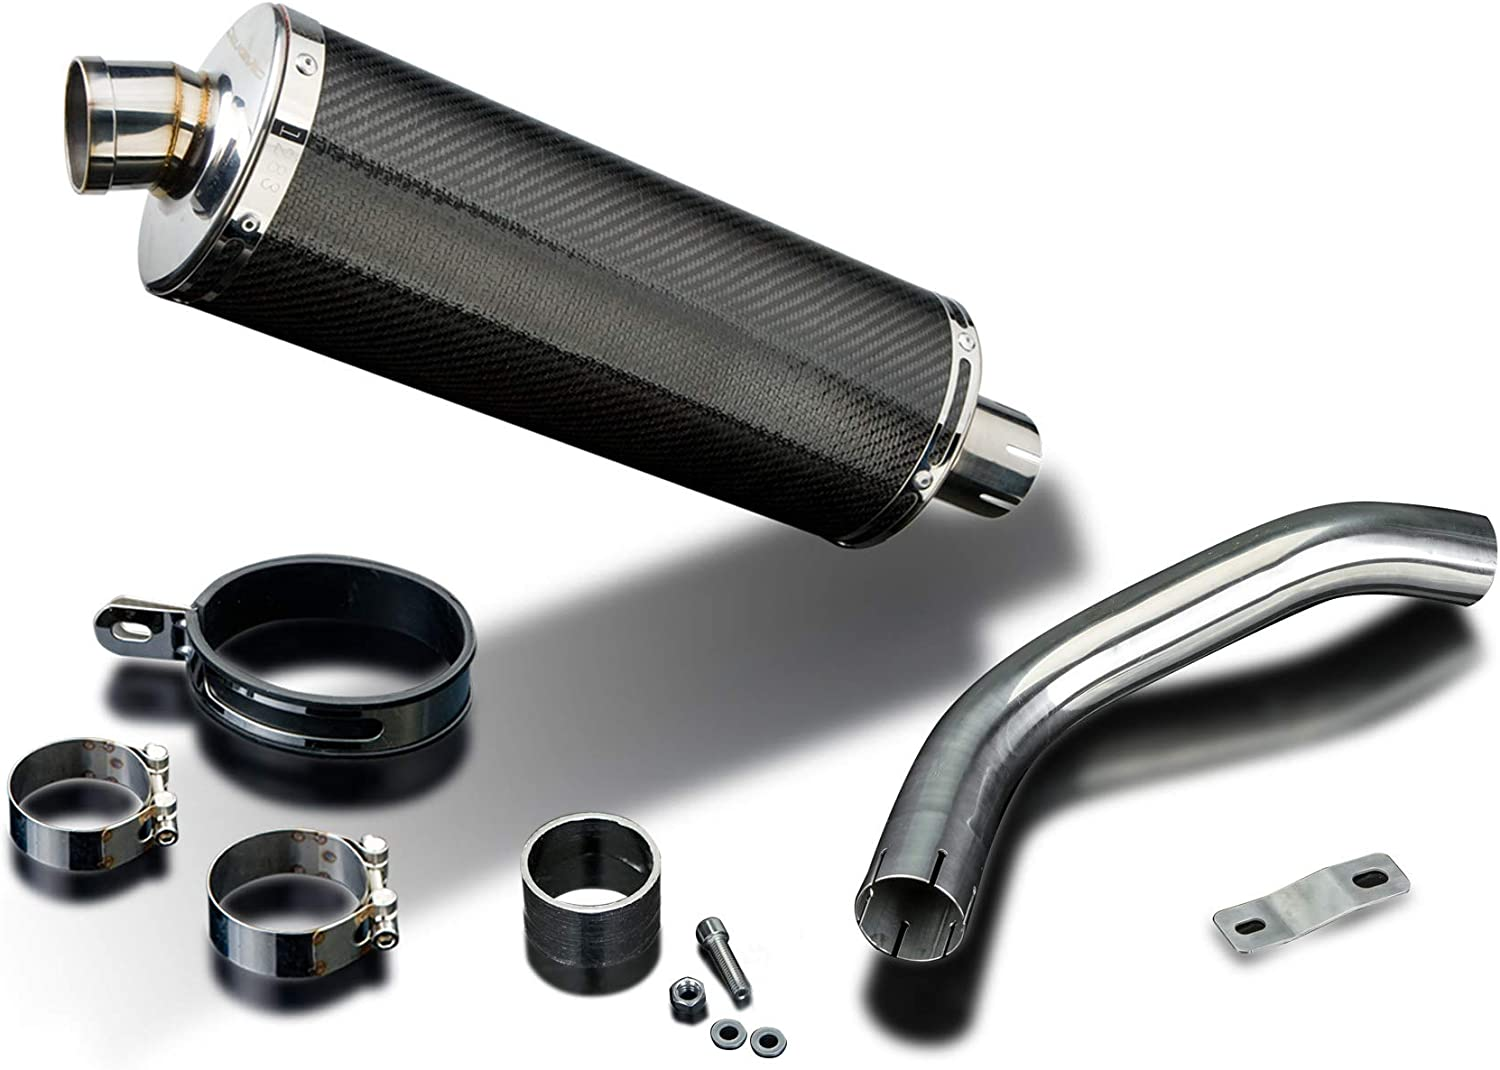 Delkevic Aftermarket Slip On compatible with Yamaha Super Tenere XTZ1200 Stubby 14 Carbon Fiber Oval Muffler Exhaust 12-19